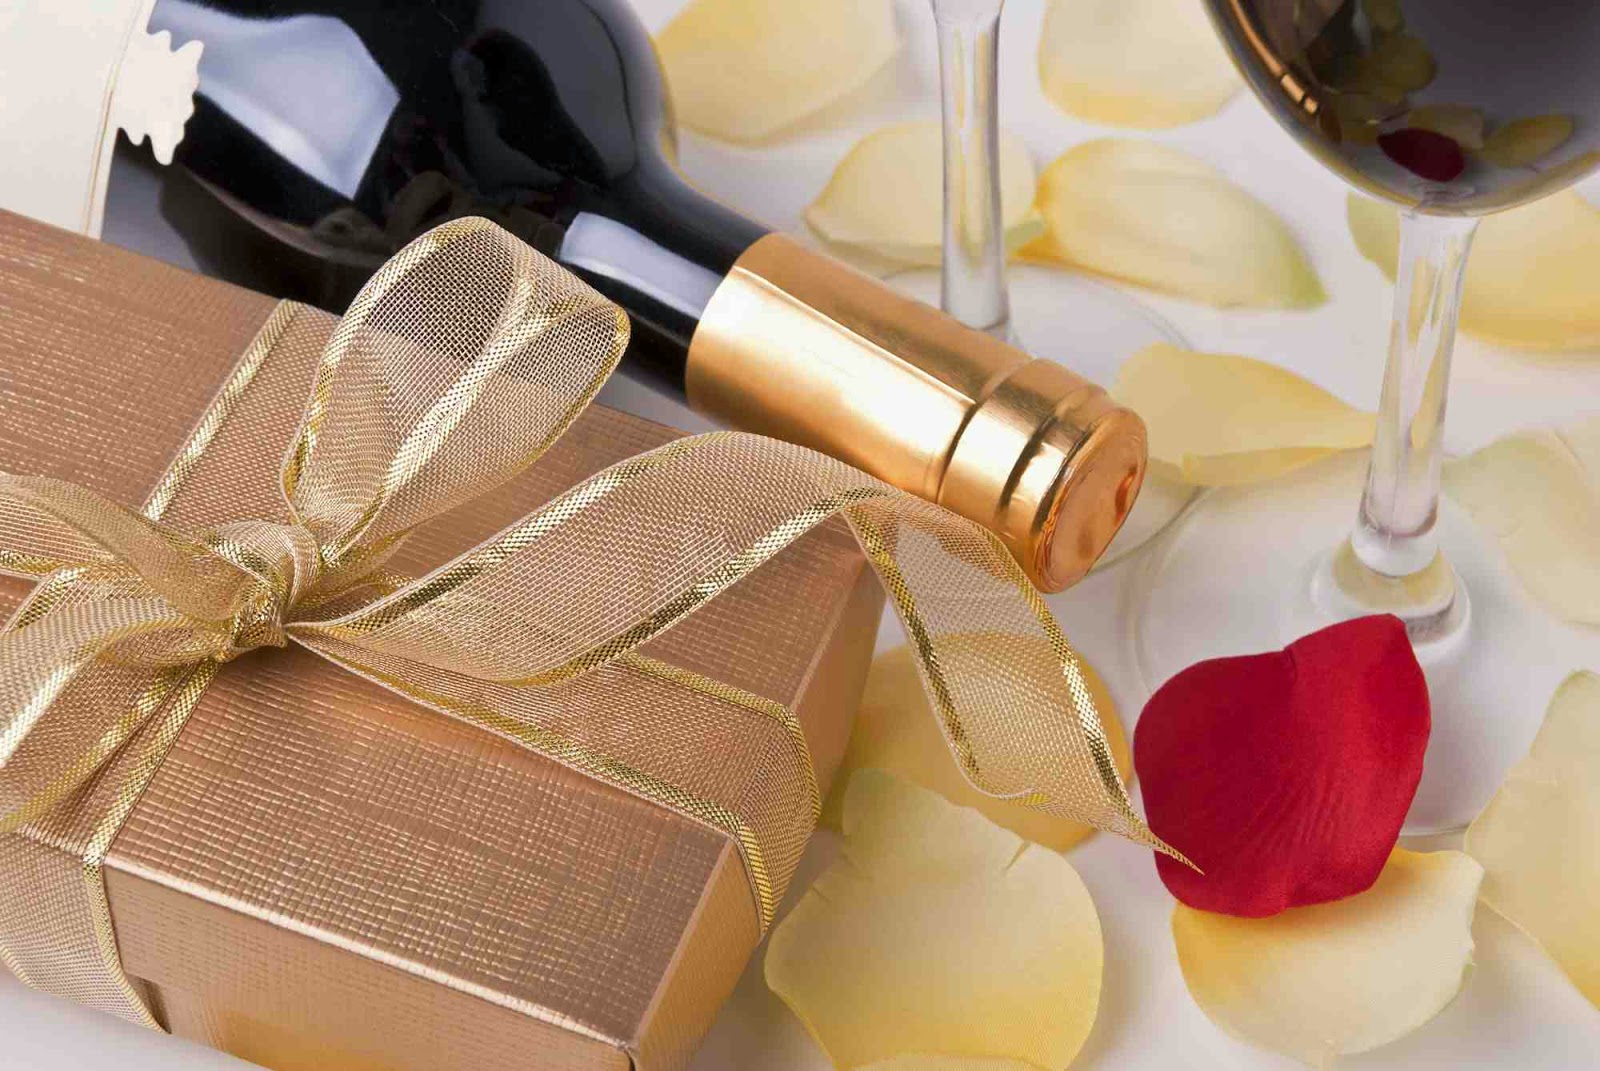 Mummy S Food And Drinks 6 Wonderful Wine Gift Ideas For Christmas